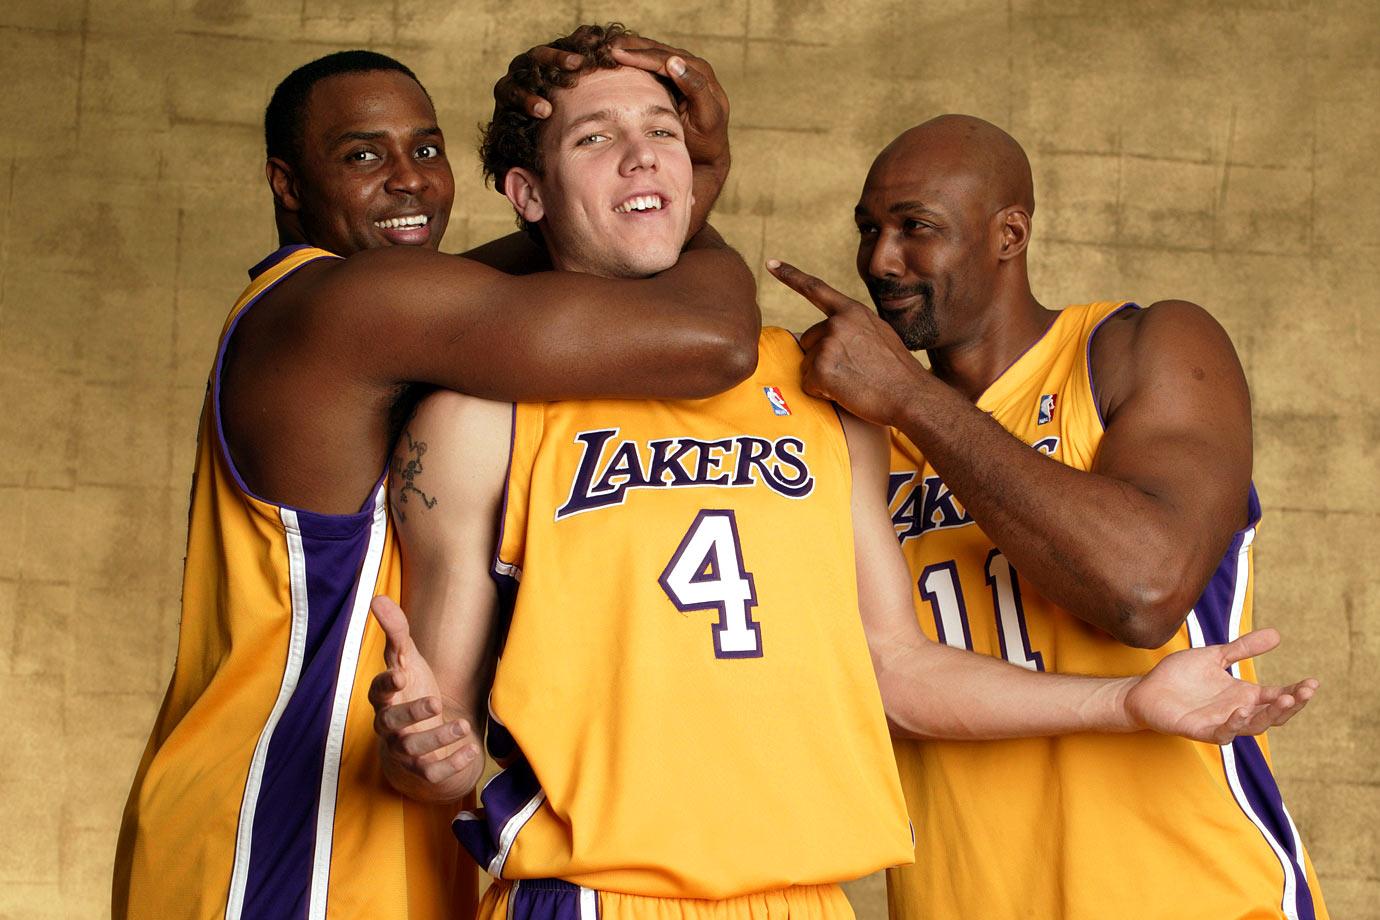 Karl Malone jokes around with teammates Luke Walton and Horace Grant during an SI photo shoot.